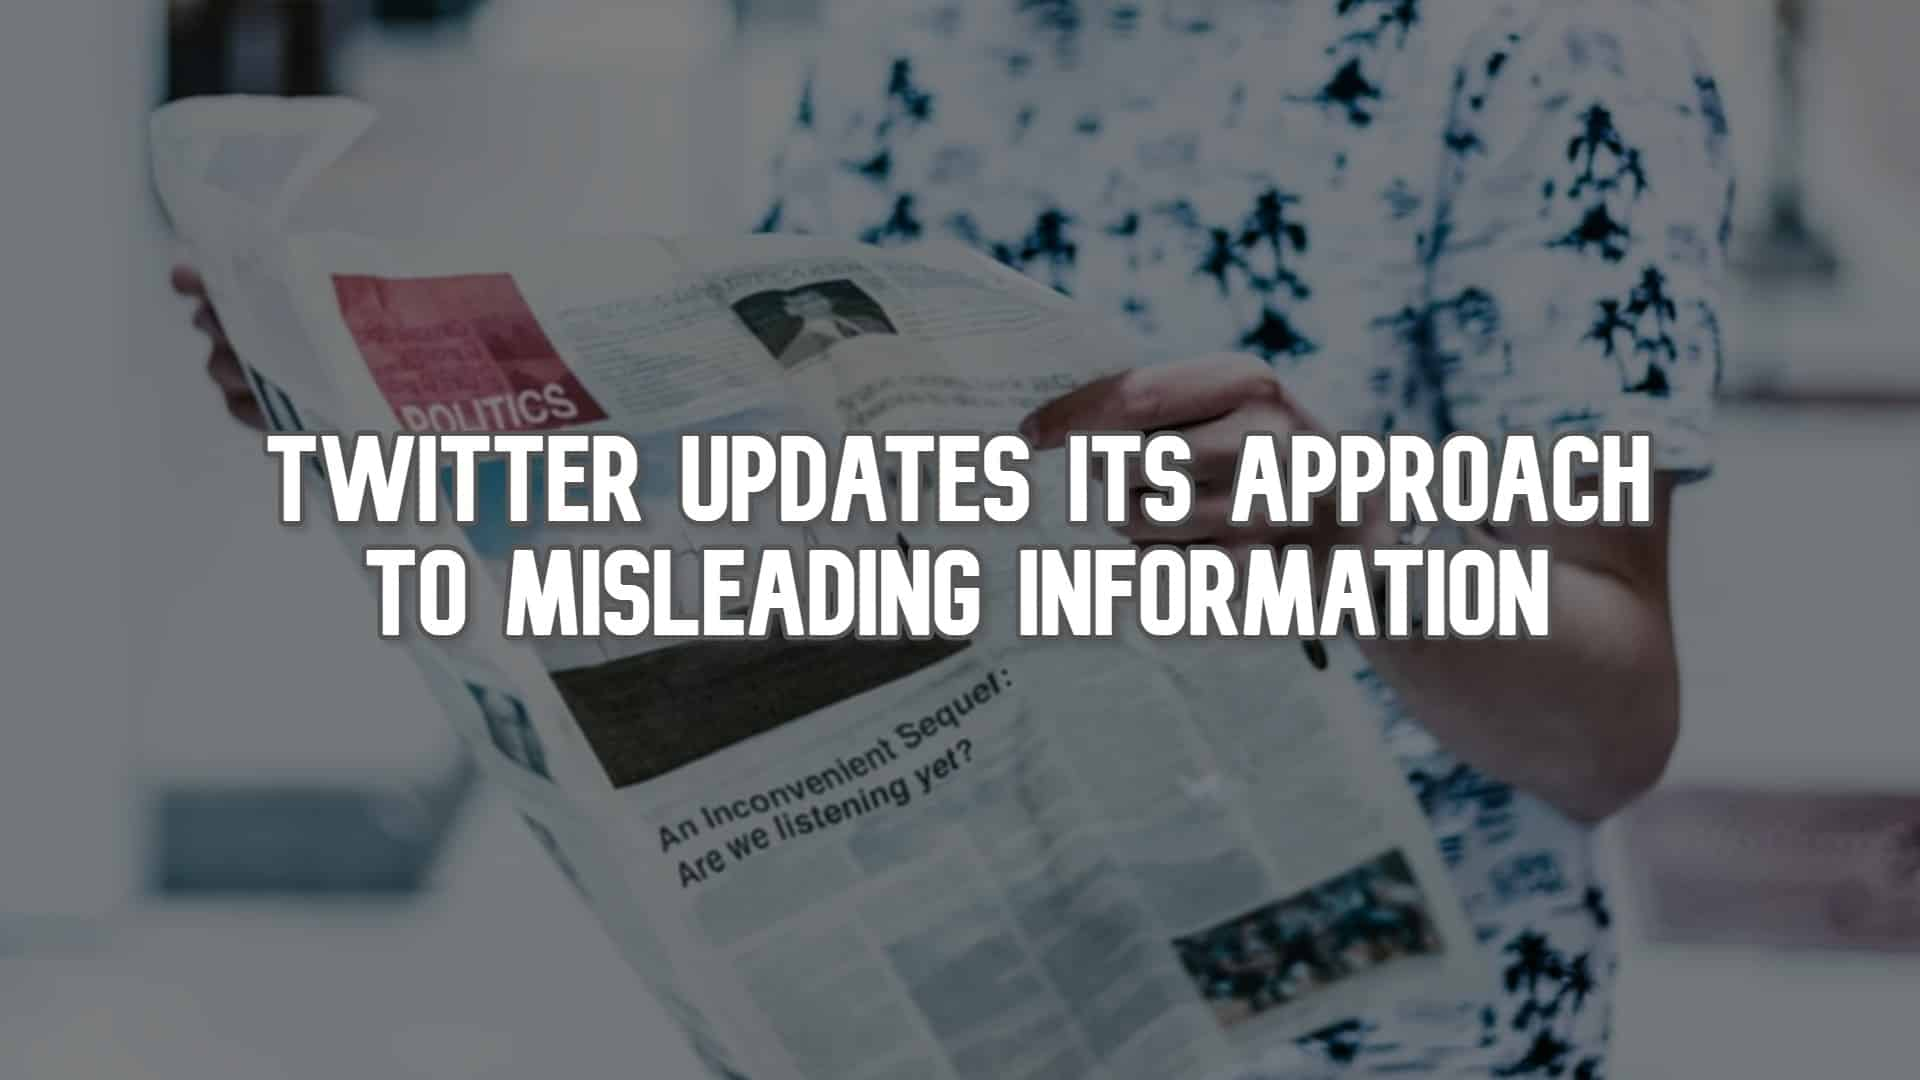 Twitter Updates Its Approach to Misleading Information